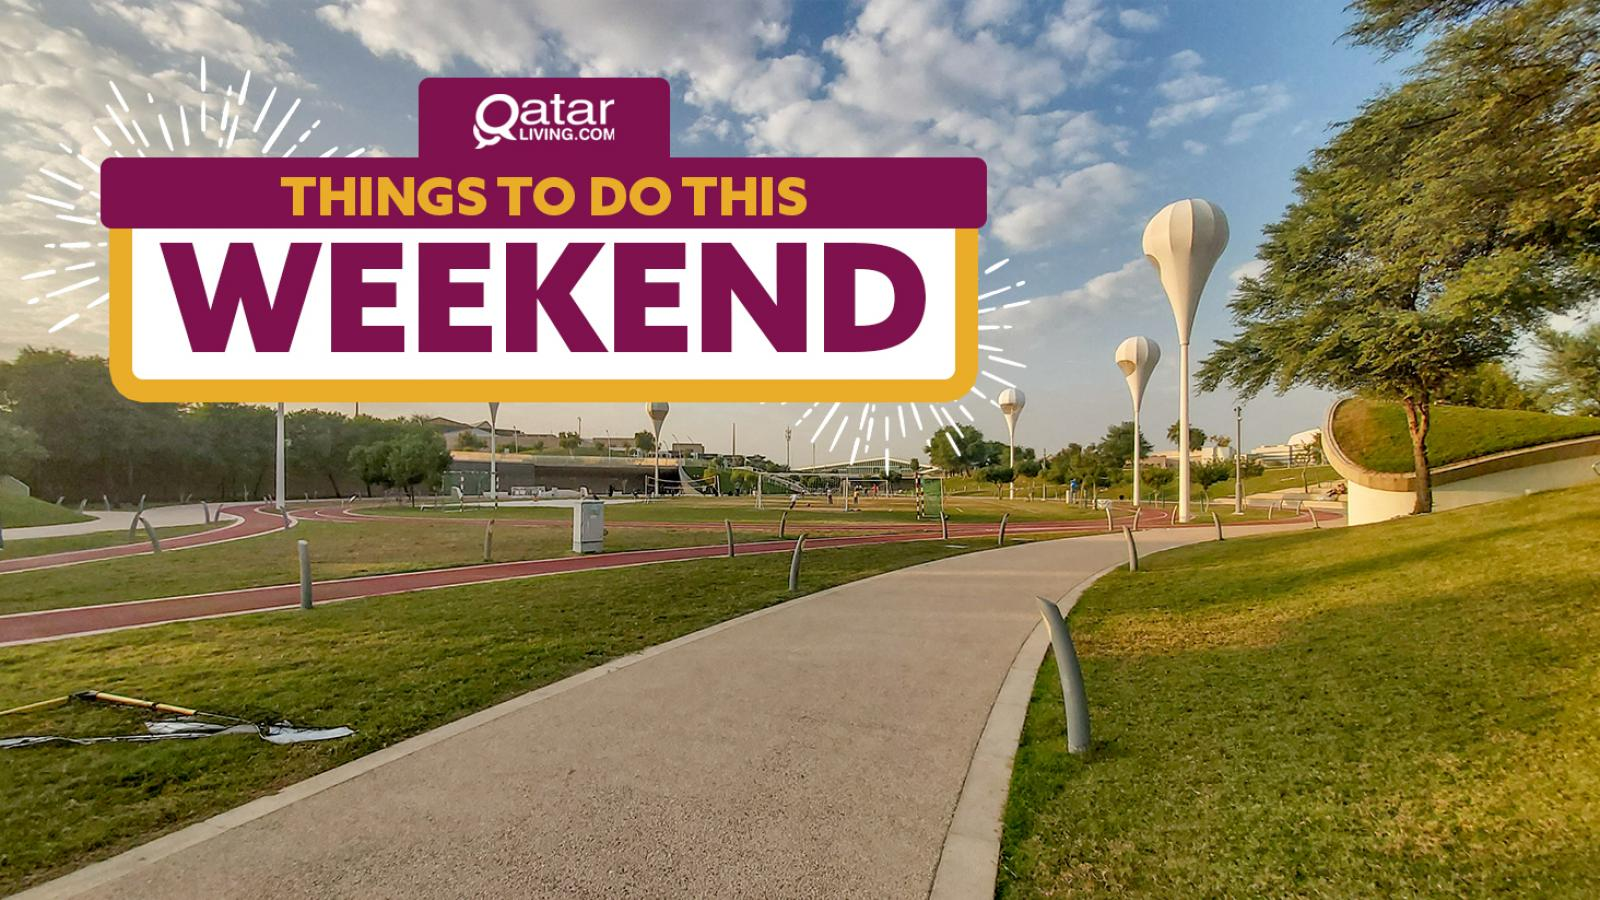 Things to do in Qatar this weekend: February 27-29